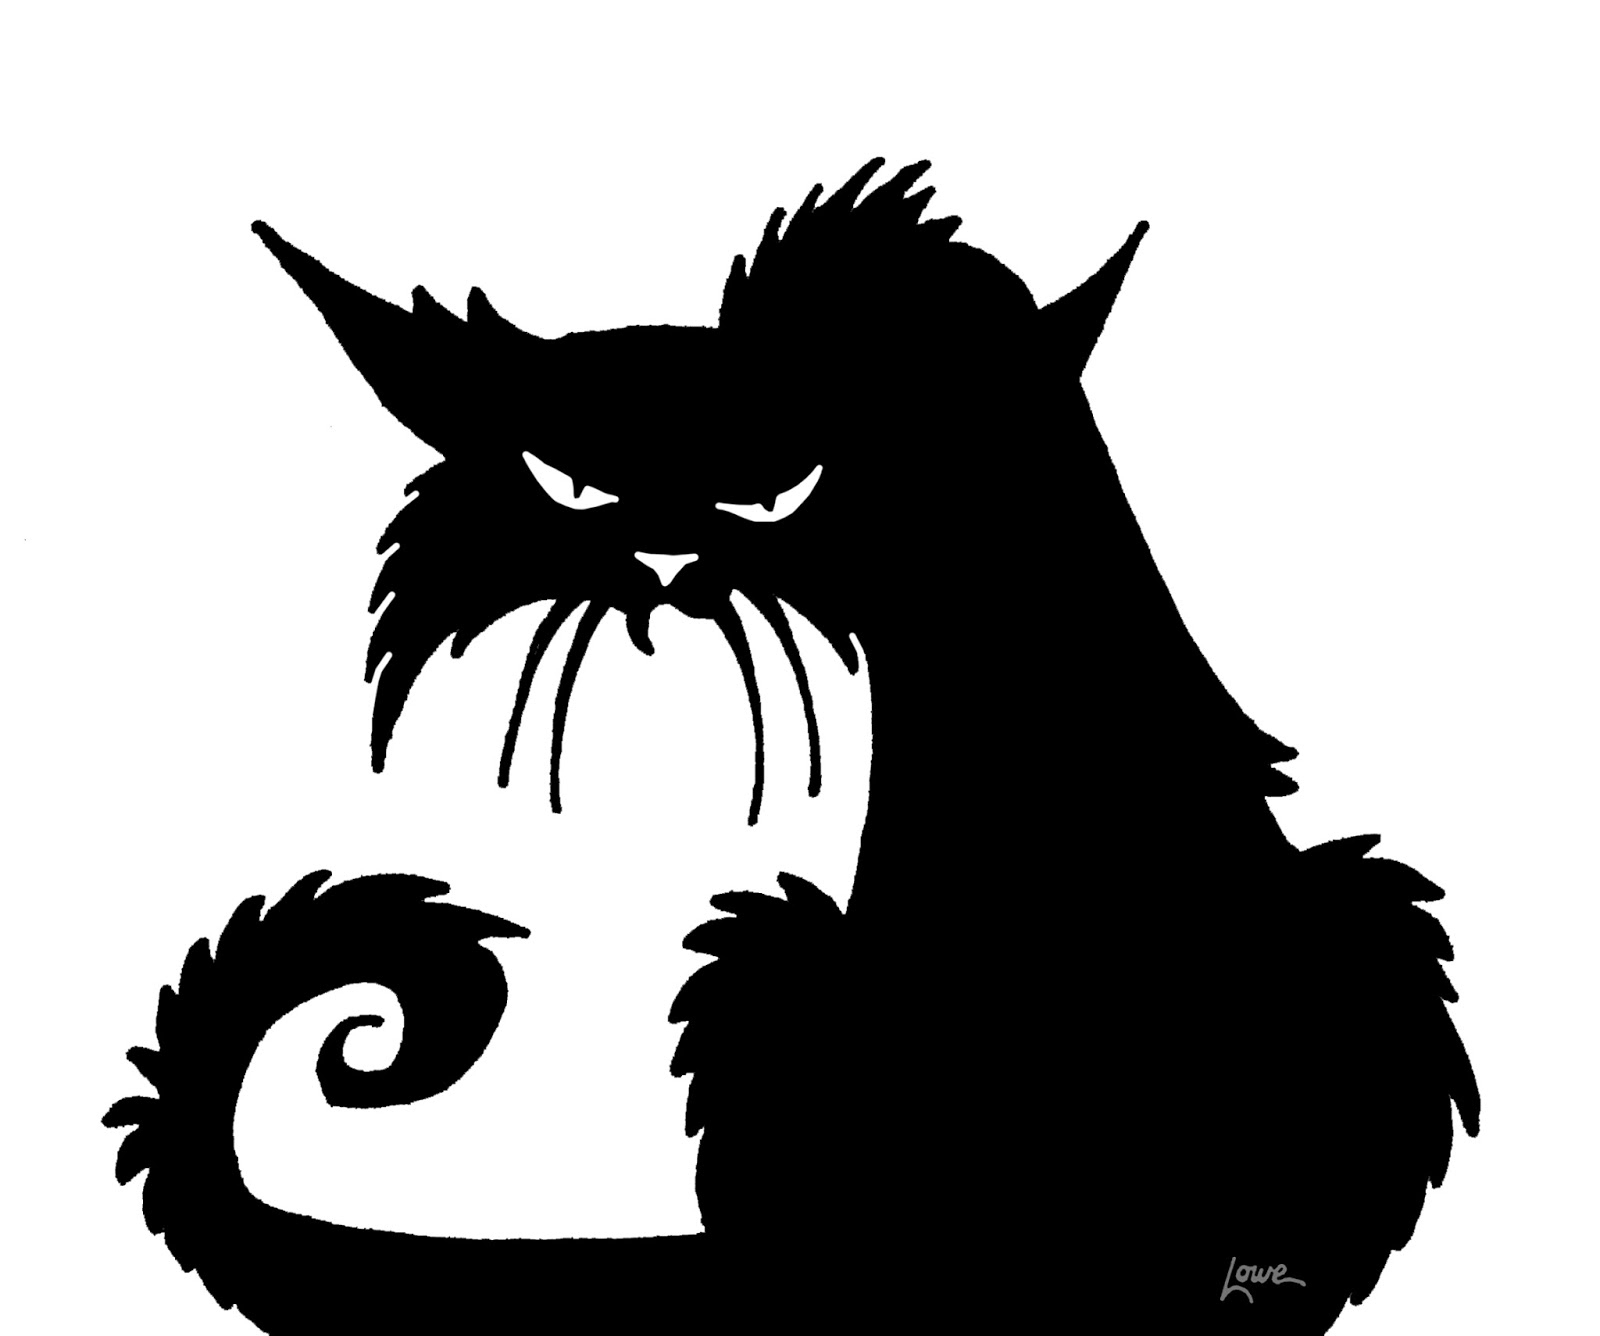 Dave Lowe Design The Blog: Witchcrafty Window Silhouette Printables - Free Printable Cat Silhouette